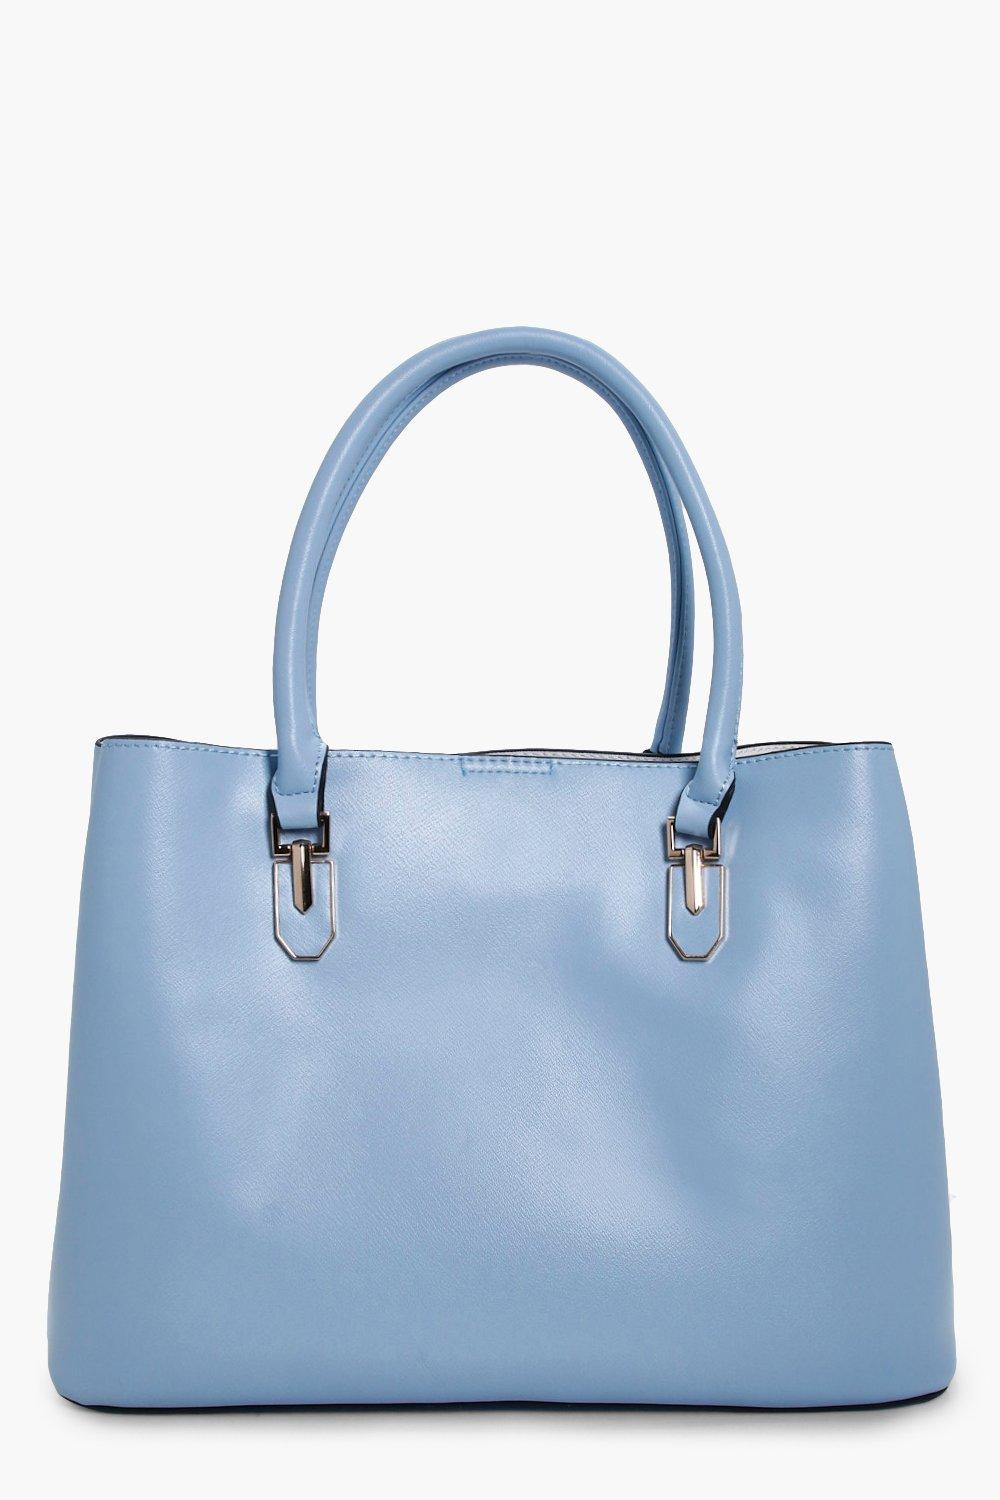 Metal Detail Tote - blue - Hannah Metal Detail Tot